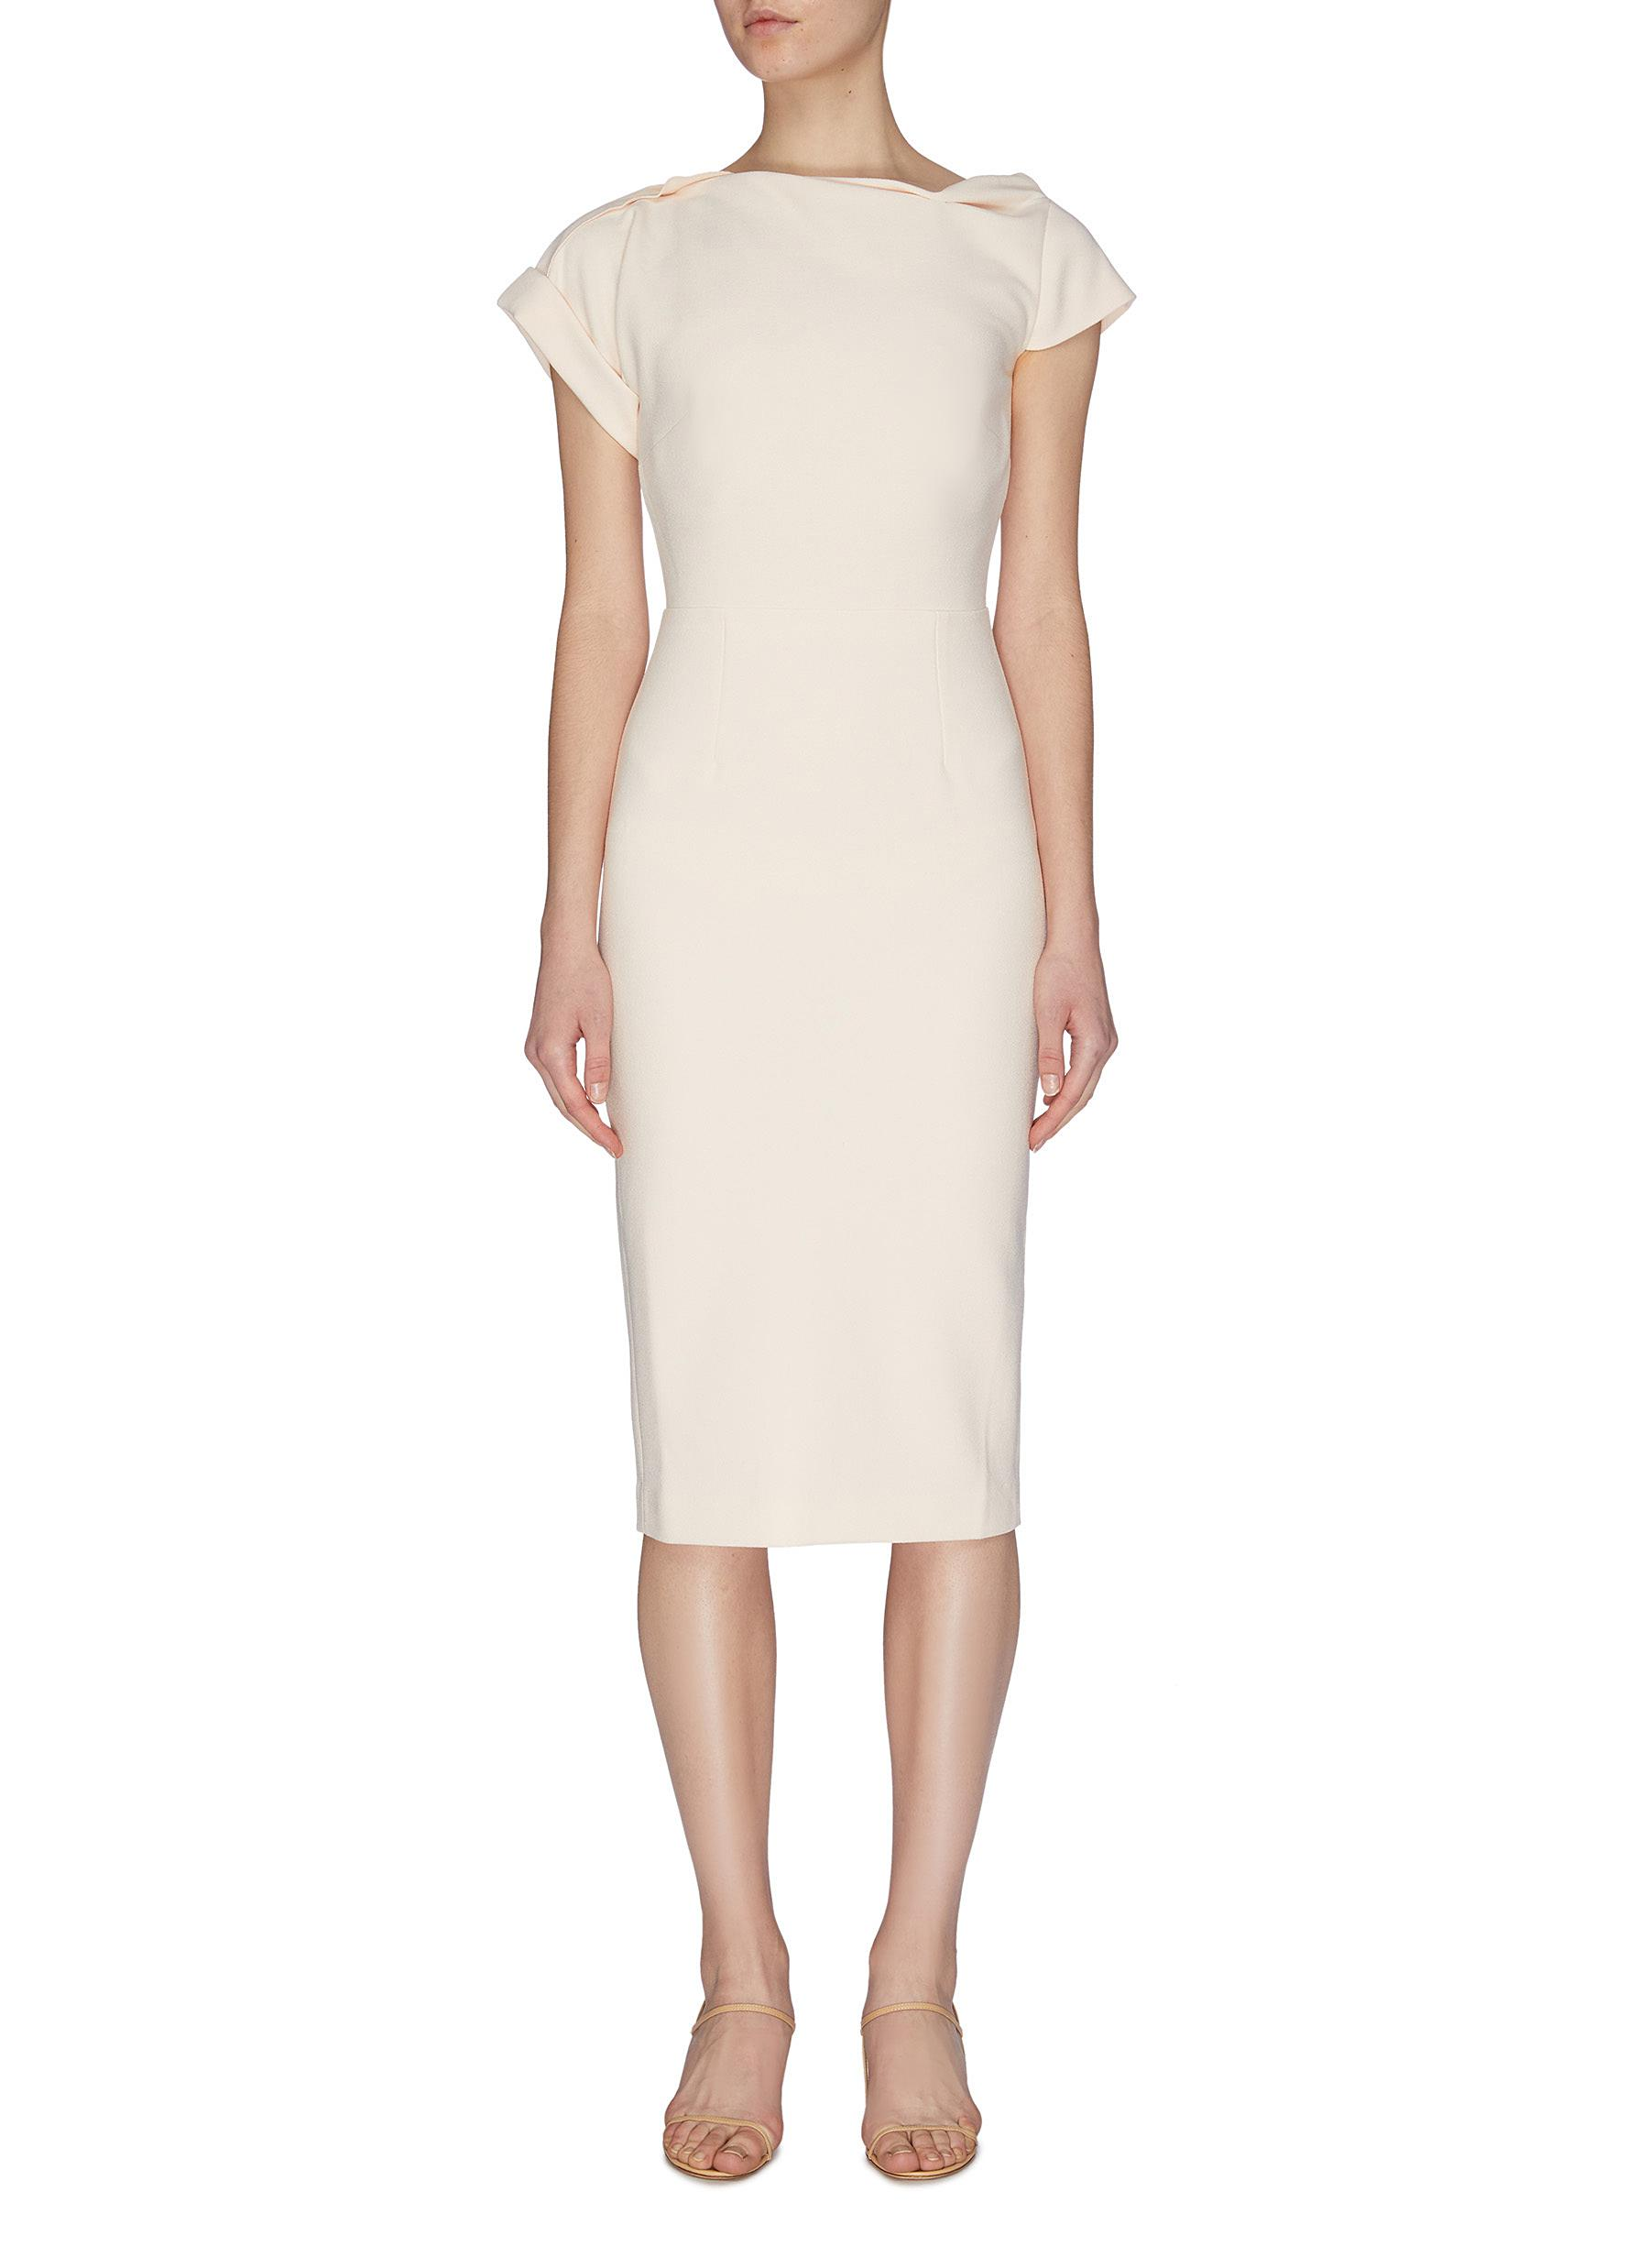 Buy Roland Mouret Dresses 'Brenin Origami' Crepe Dress